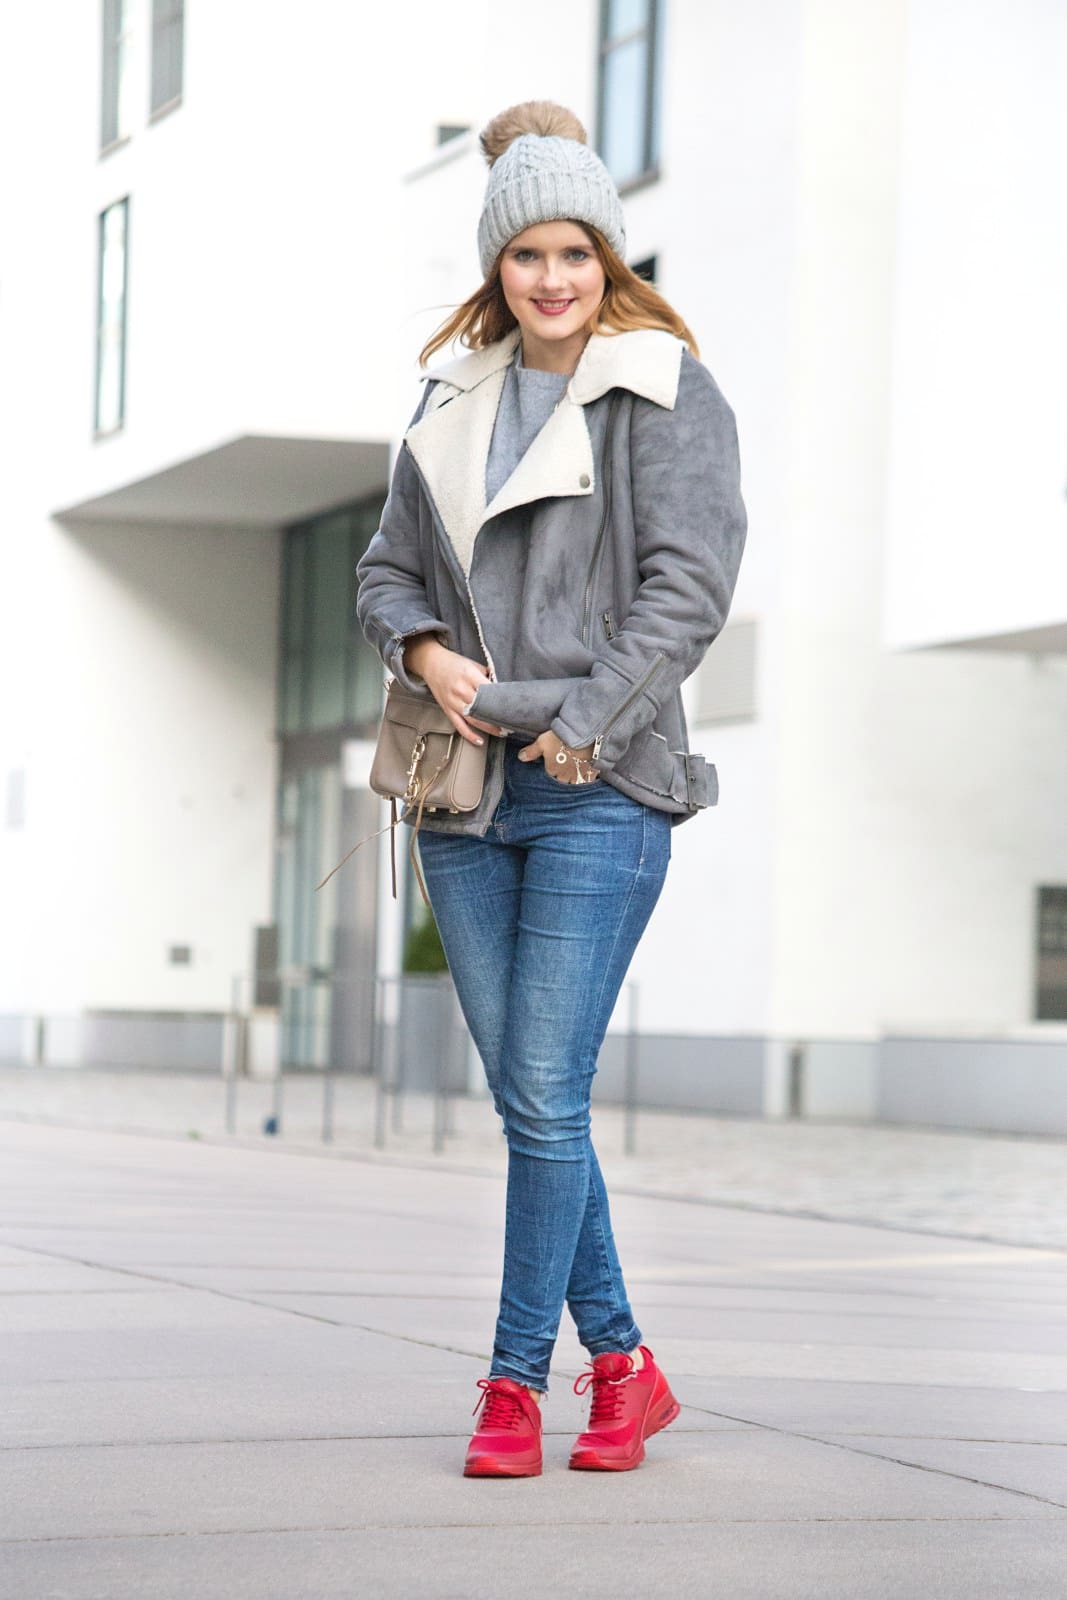 desbelleschoses-outfit-mit-nike-air-max-thea-rote-sneakers-im-fokus-bikerjacke-blue-jeans-mütze 6